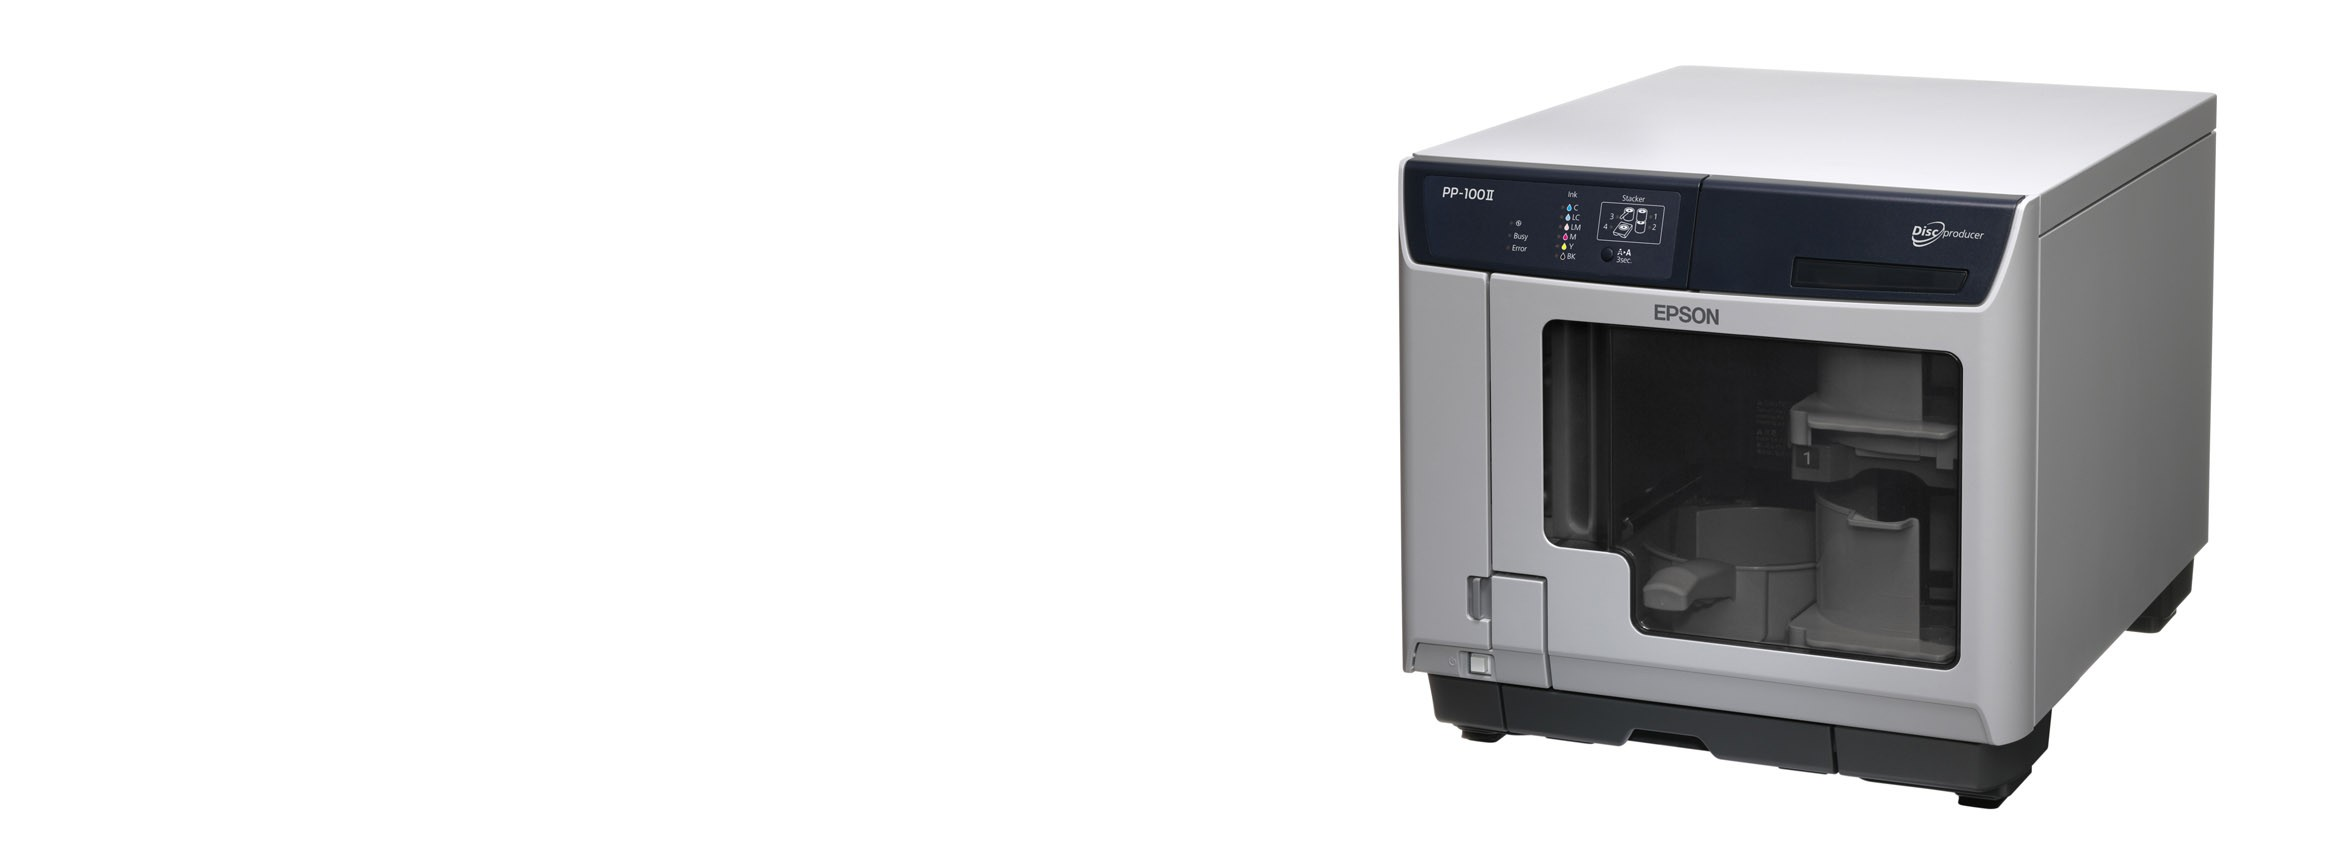 Epson PP 100 Disc Producer